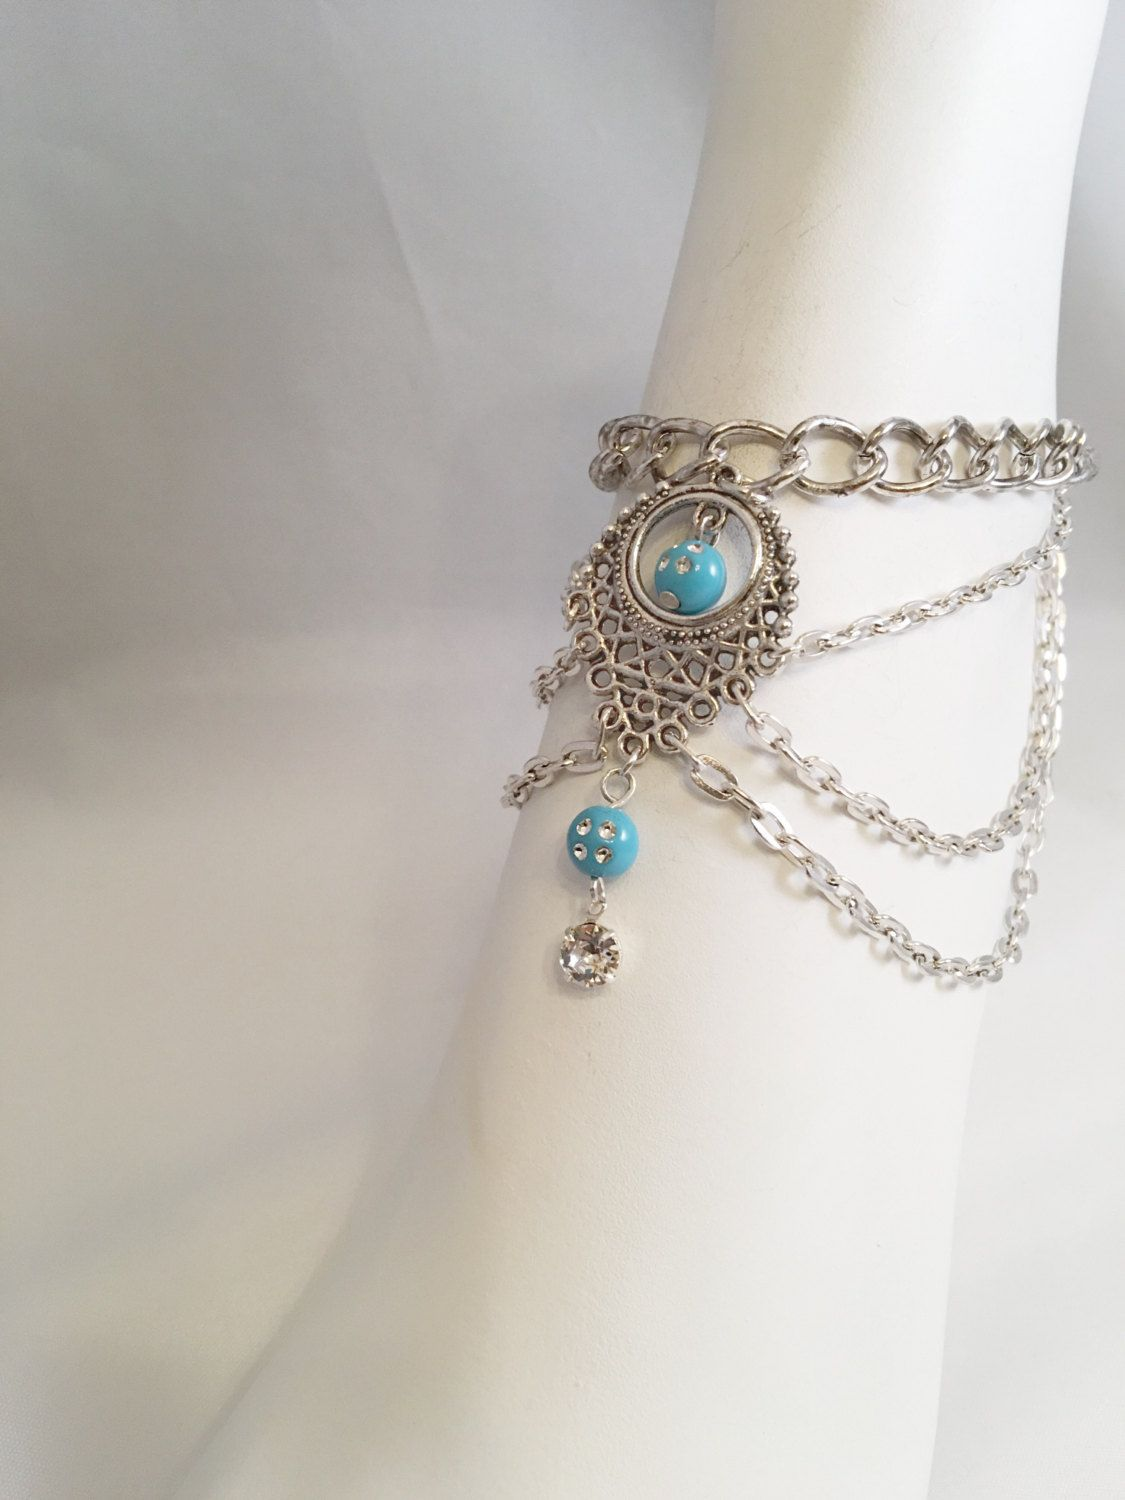 Anklet Foot  Bracelet, Anklet Chains, Layered Anklets, Turquoise Colored Ankle Bracelet, Chain Anklet by BeACharm on Etsy